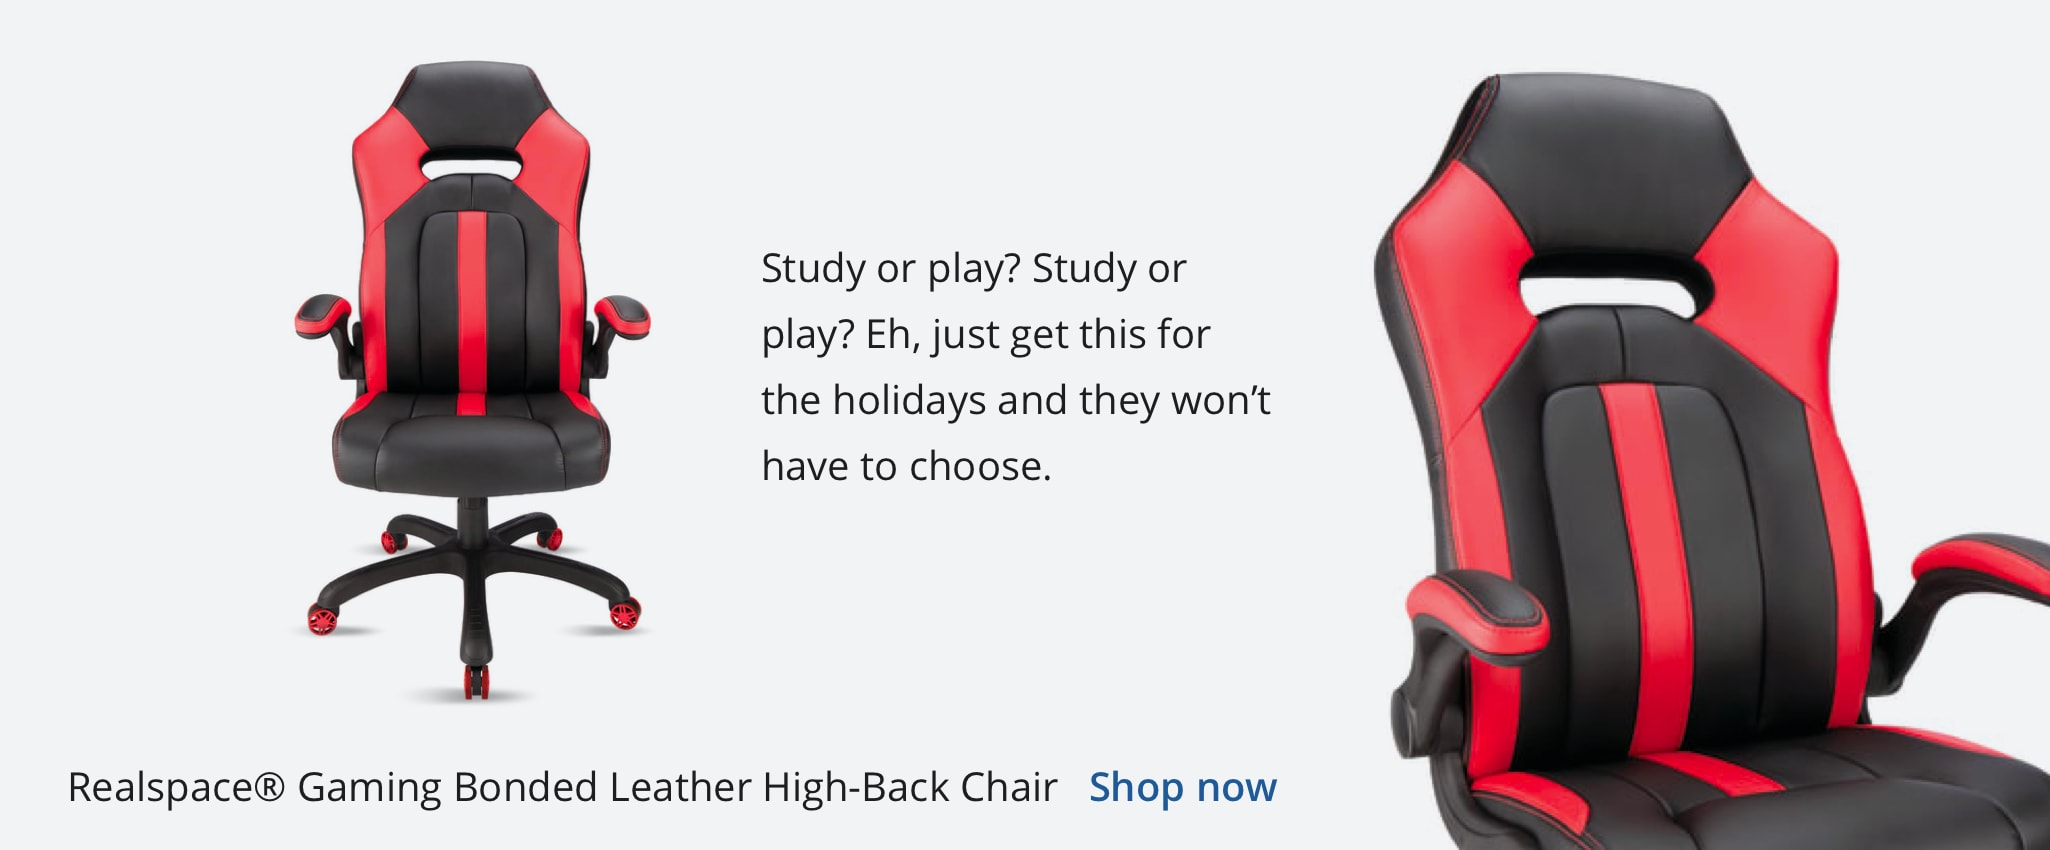 4120_www_gift-guides_2040x850_teens_chair